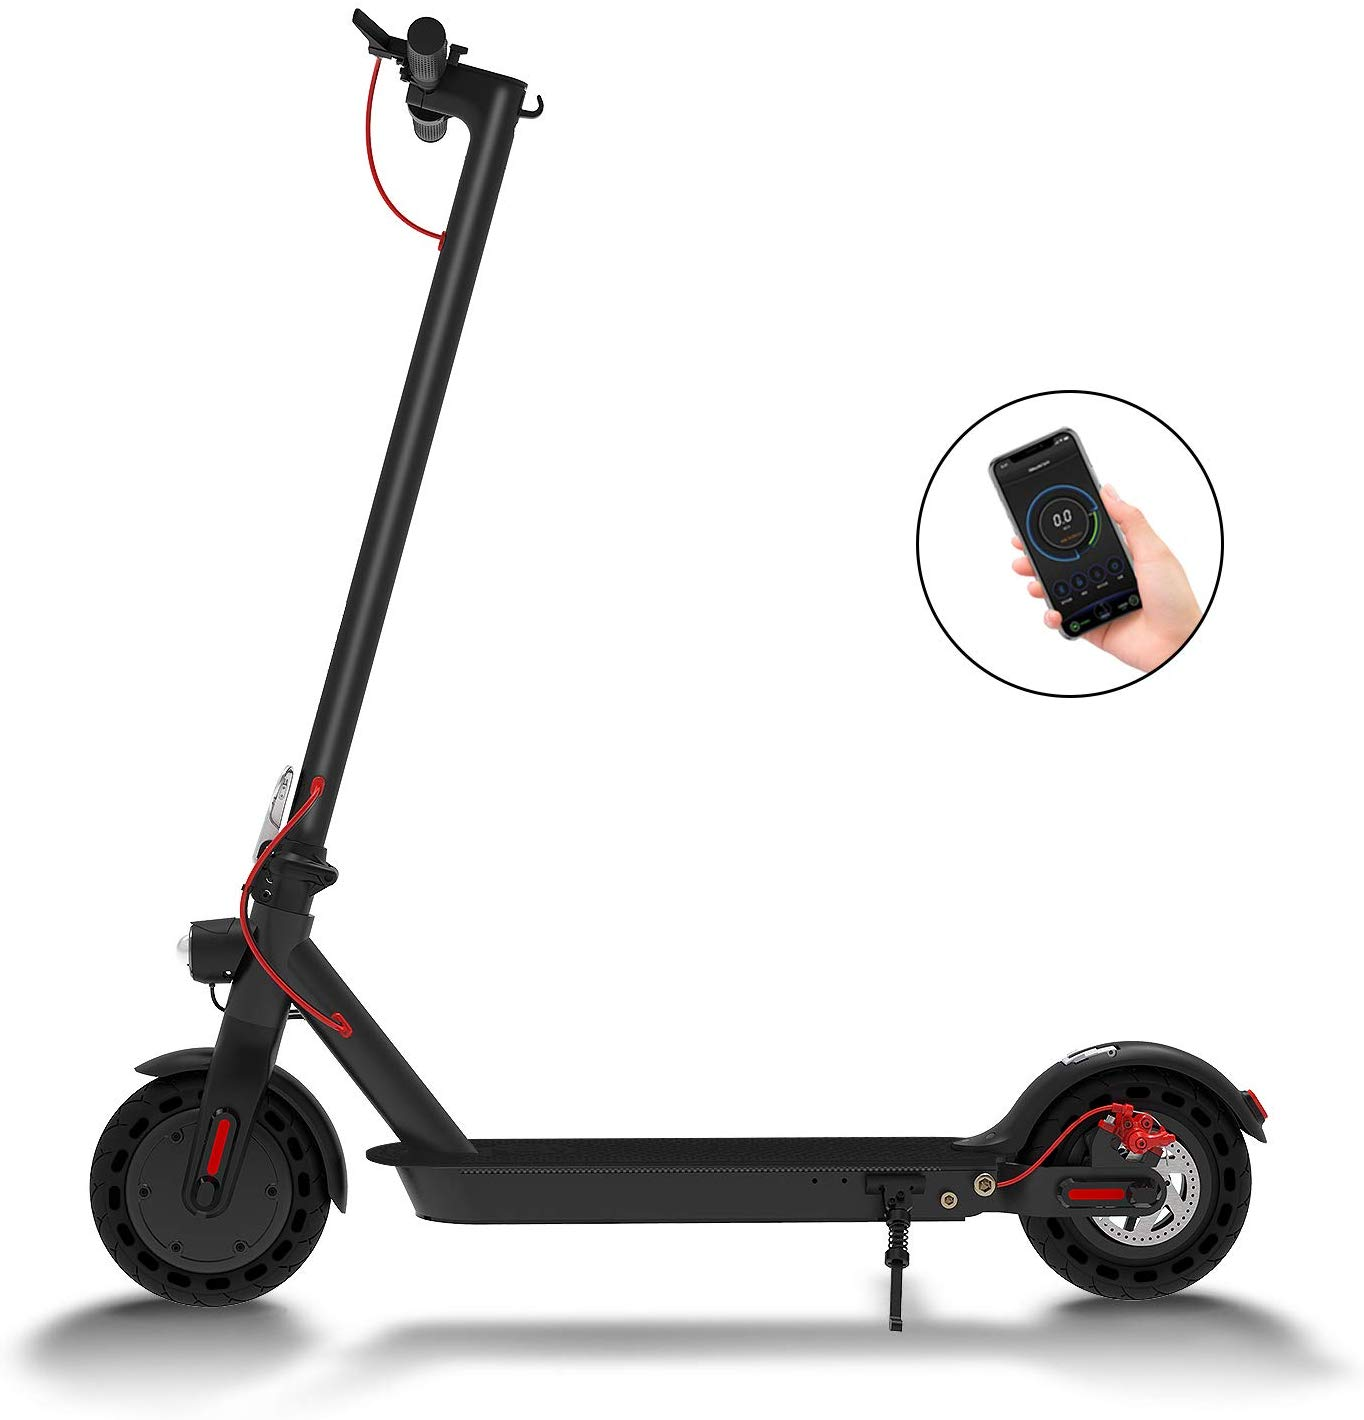 Hiboy S2 Electric Scooter